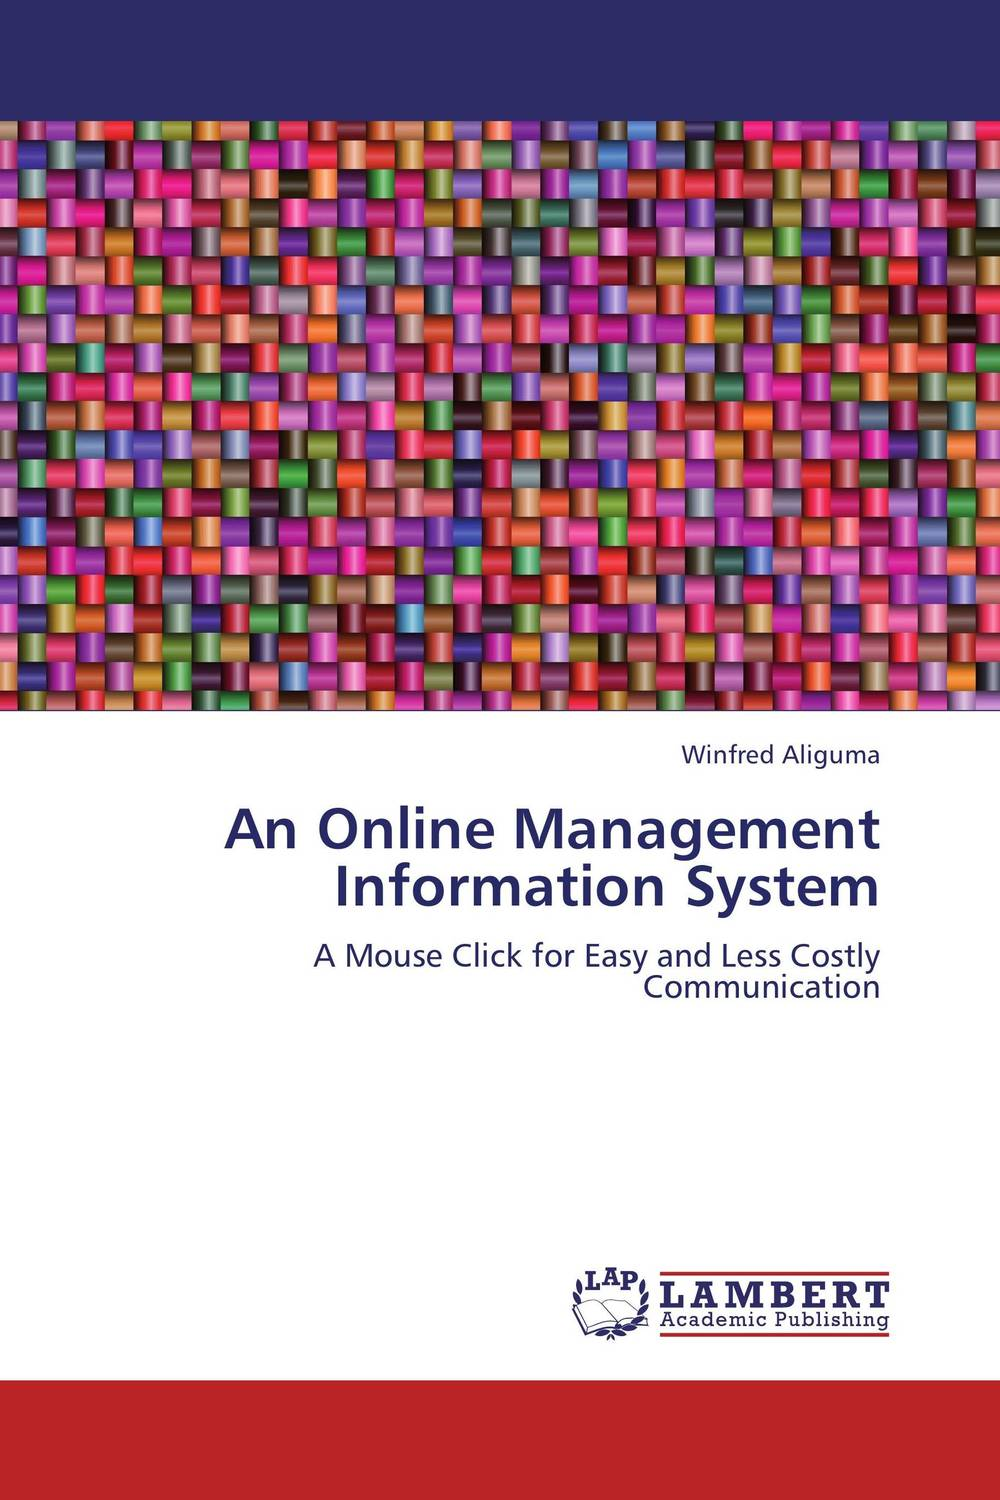 An Online Management Information System robert hillard information driven business how to manage data and information for maximum advantage